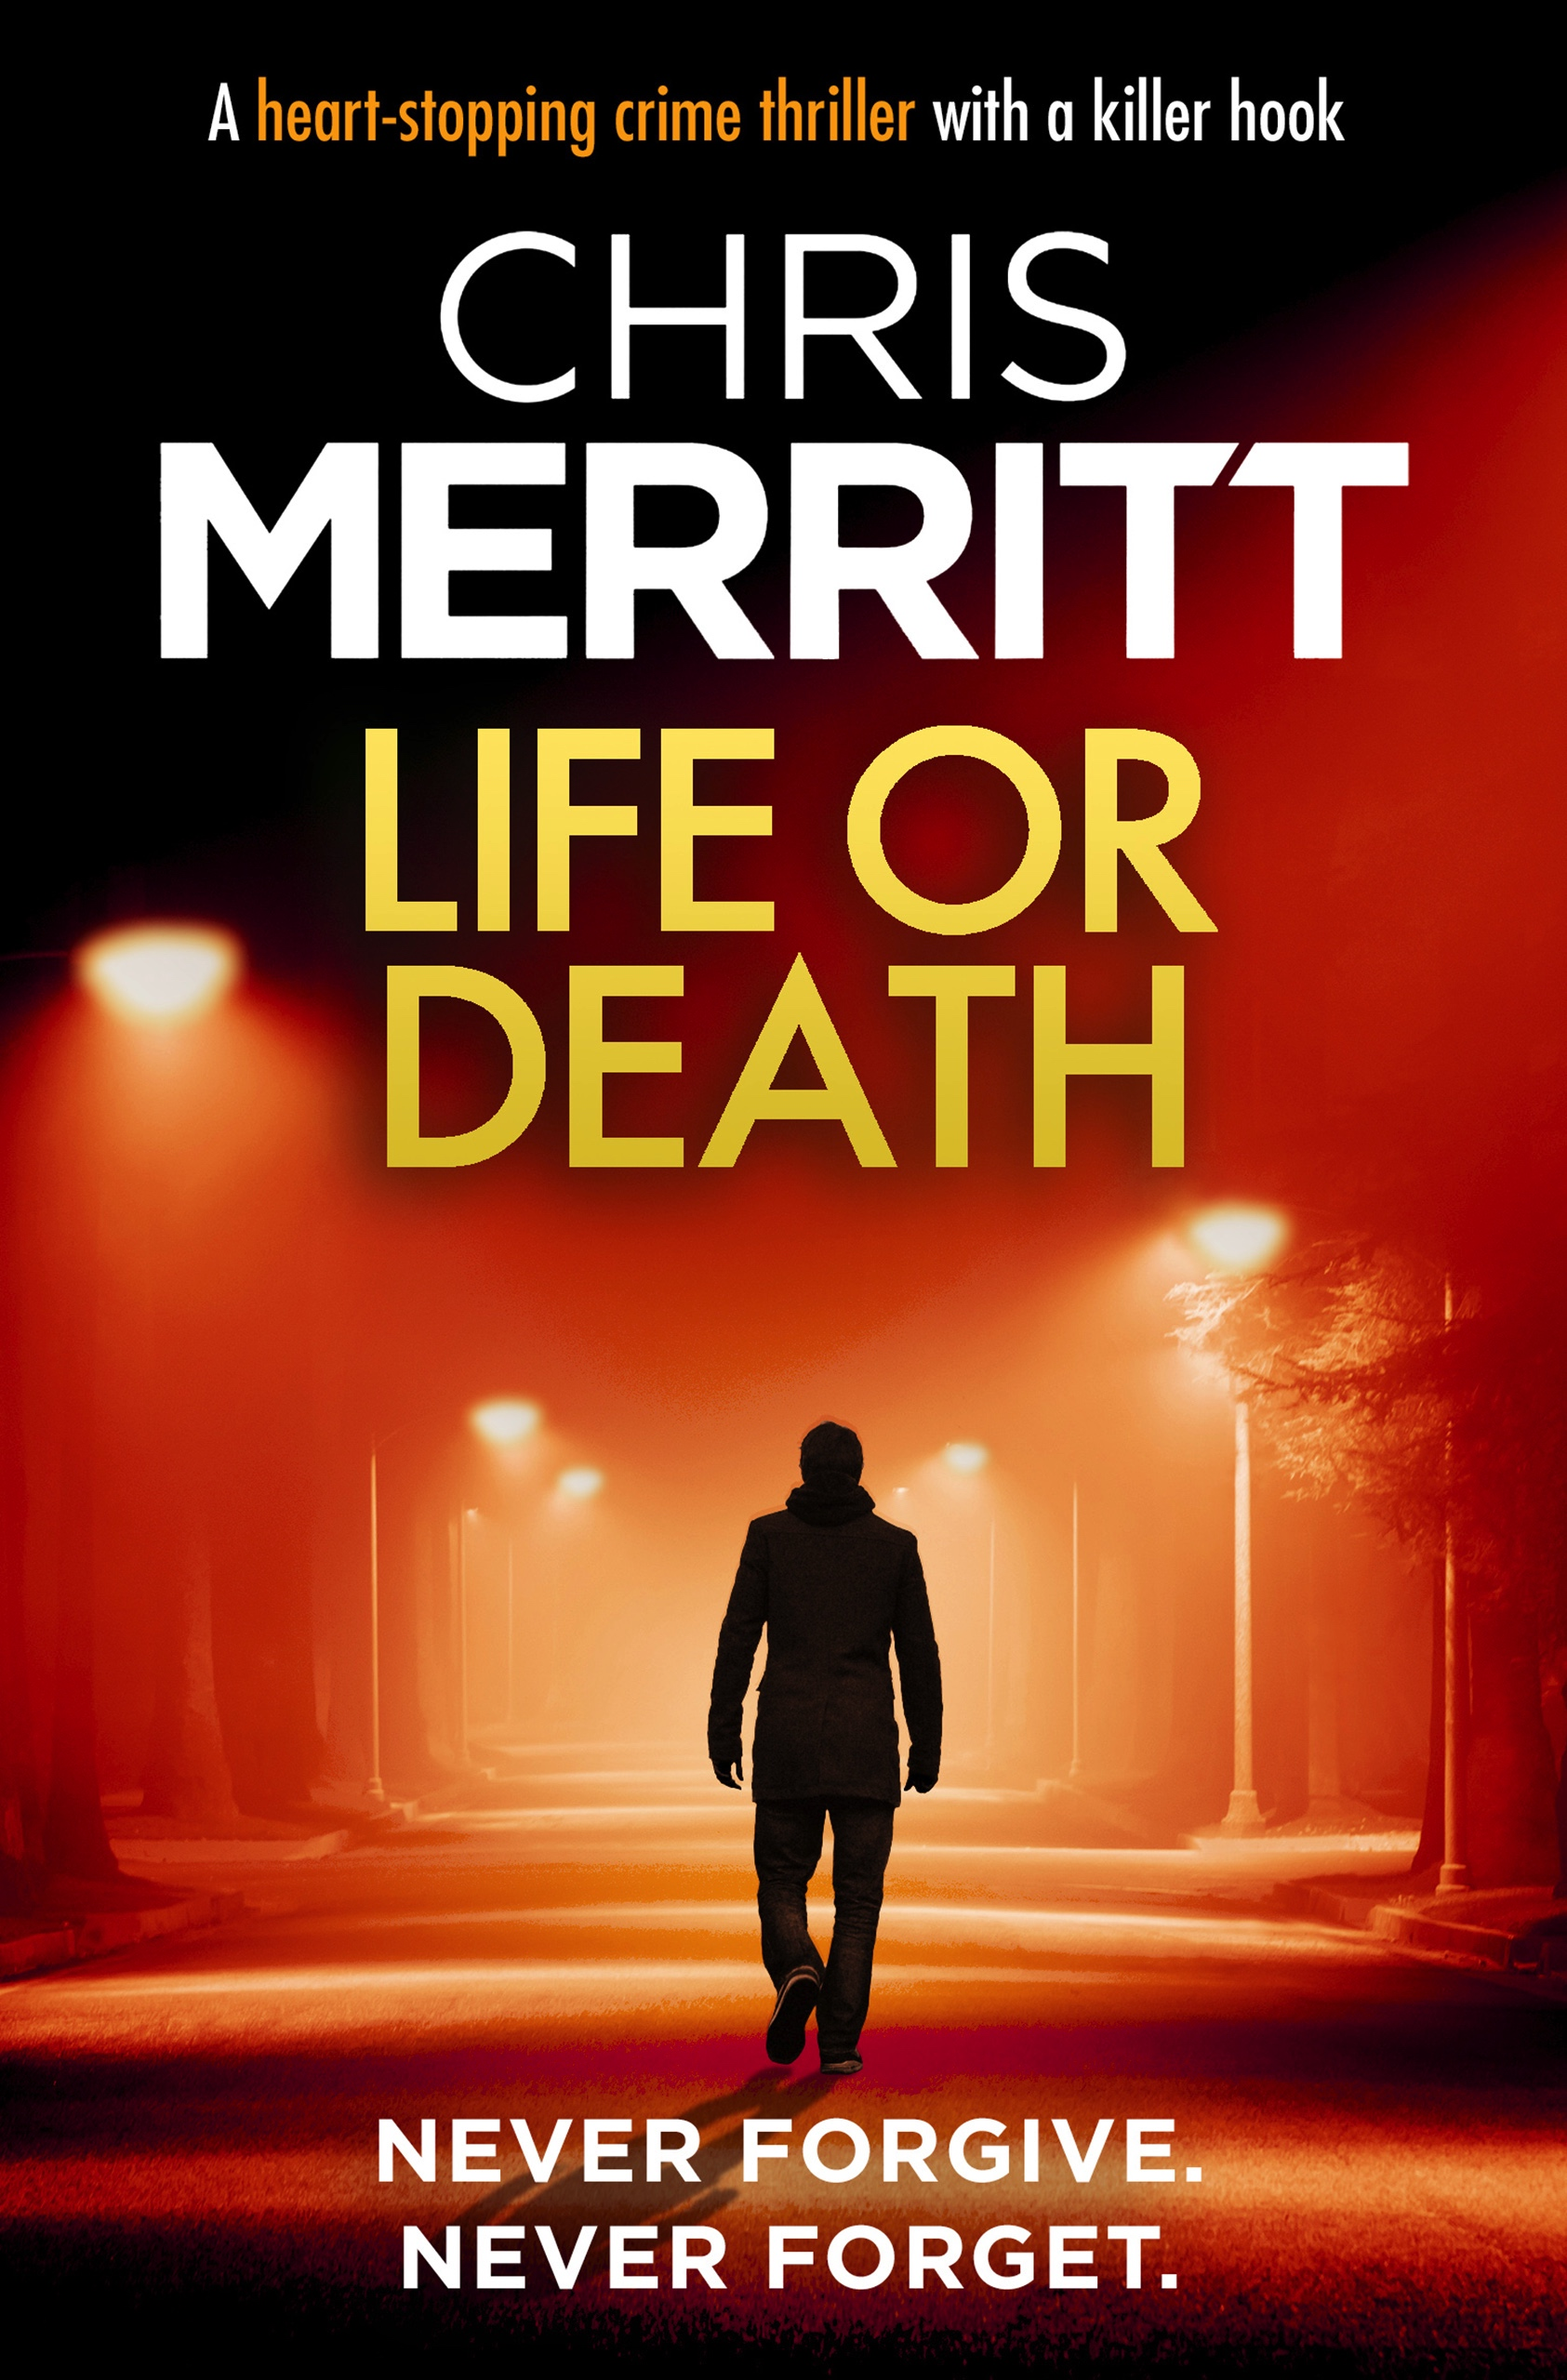 LIFE OR DEATH - DI Zac Boateng book 3Never forget. Never forgive.As a detective in the Metropolitan police, Zac is no stranger to murder cases, but this one is different. This is his daughter's murder. Years after Amelia died, Zac is still trying to trace the police officer involved in his daughter's death.And whilst Zac is prepared to break every rule to find the man responsible, his young and ambitious deputy, Kat, is working on a high-profile case of her own. But she knows Zac is keeping secrets from his team so she's following his every move.When one of Zac's informants is killed, he knows he's close to catching his man, but before he can act, he receives a call about his son which blows his world apart… And this time, he knows he'll stop at nothing to save his family.Available now on ebook, audiobook and print-on-demand:Amazon: http://geni.us/LodCoveriBookstore: https://tinyurl.com/y7vqjoa6Kobo: https://tinyurl.com/y8floql8Googleplay: https://tinyurl.com/yawpggg8